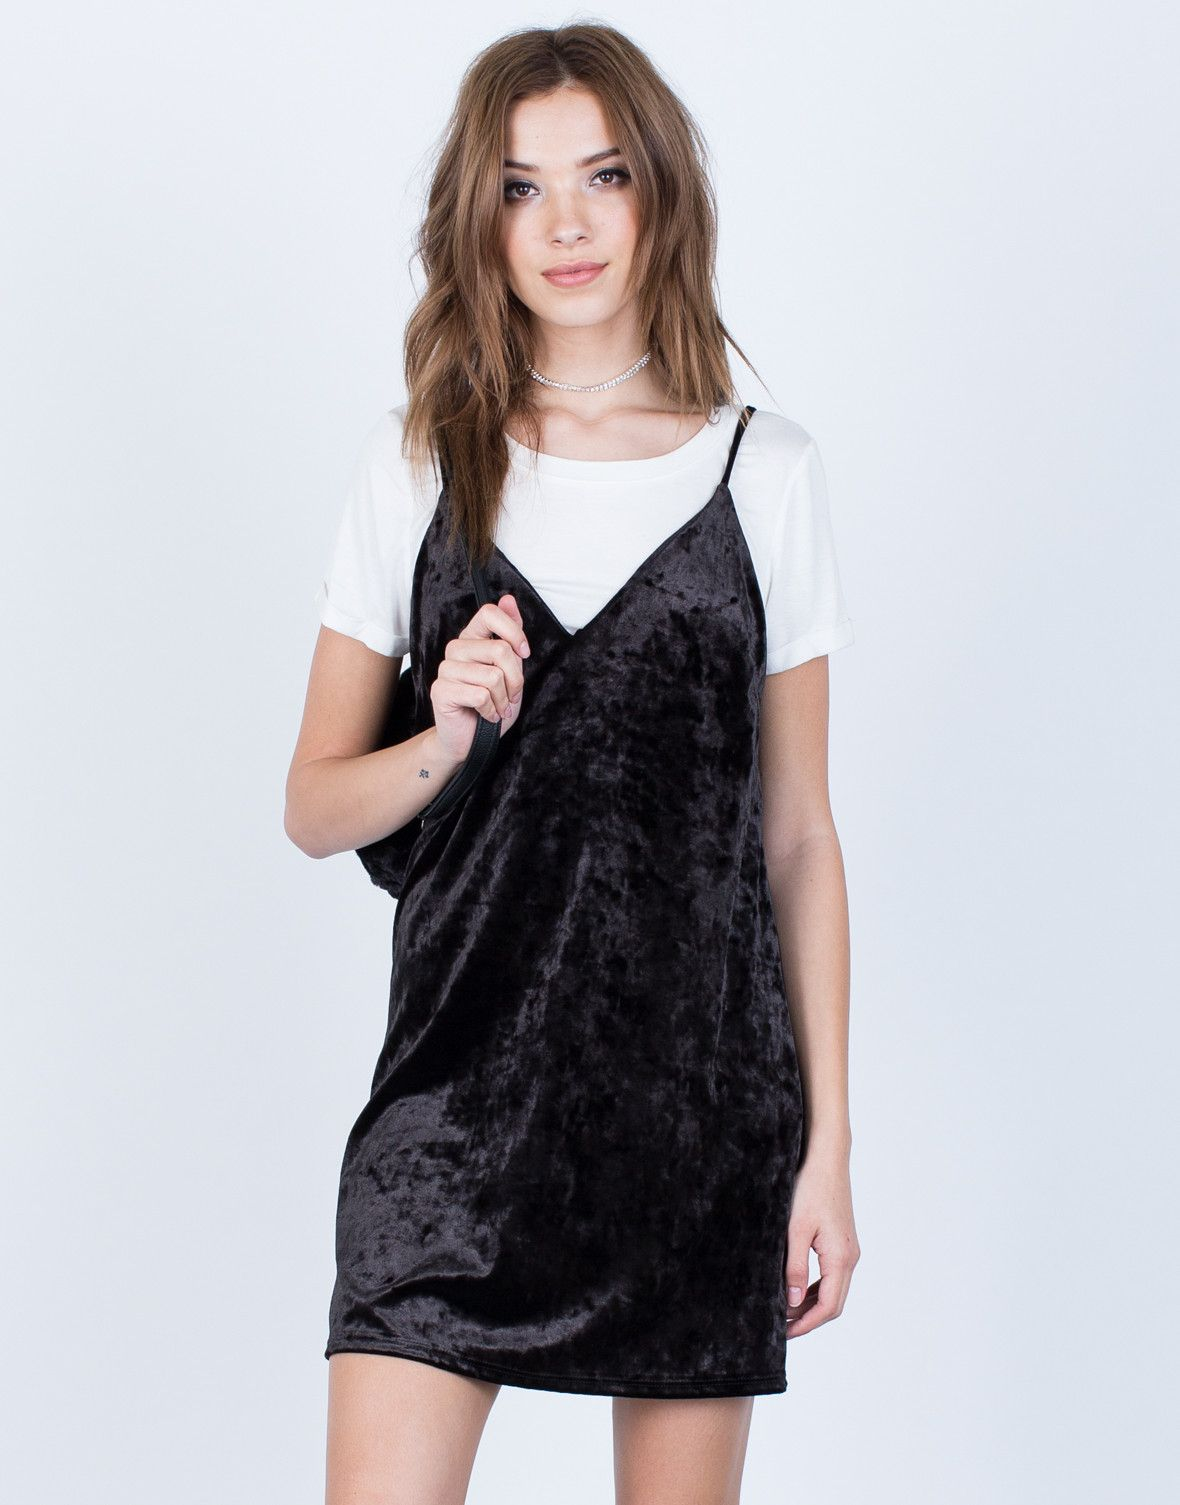 71bcddaed9d1e You can t go wrong by heading out on a Saturday night in a little black  dress. The Crushed in Velvet Slip Dress is the perfect piece that will make  your ...